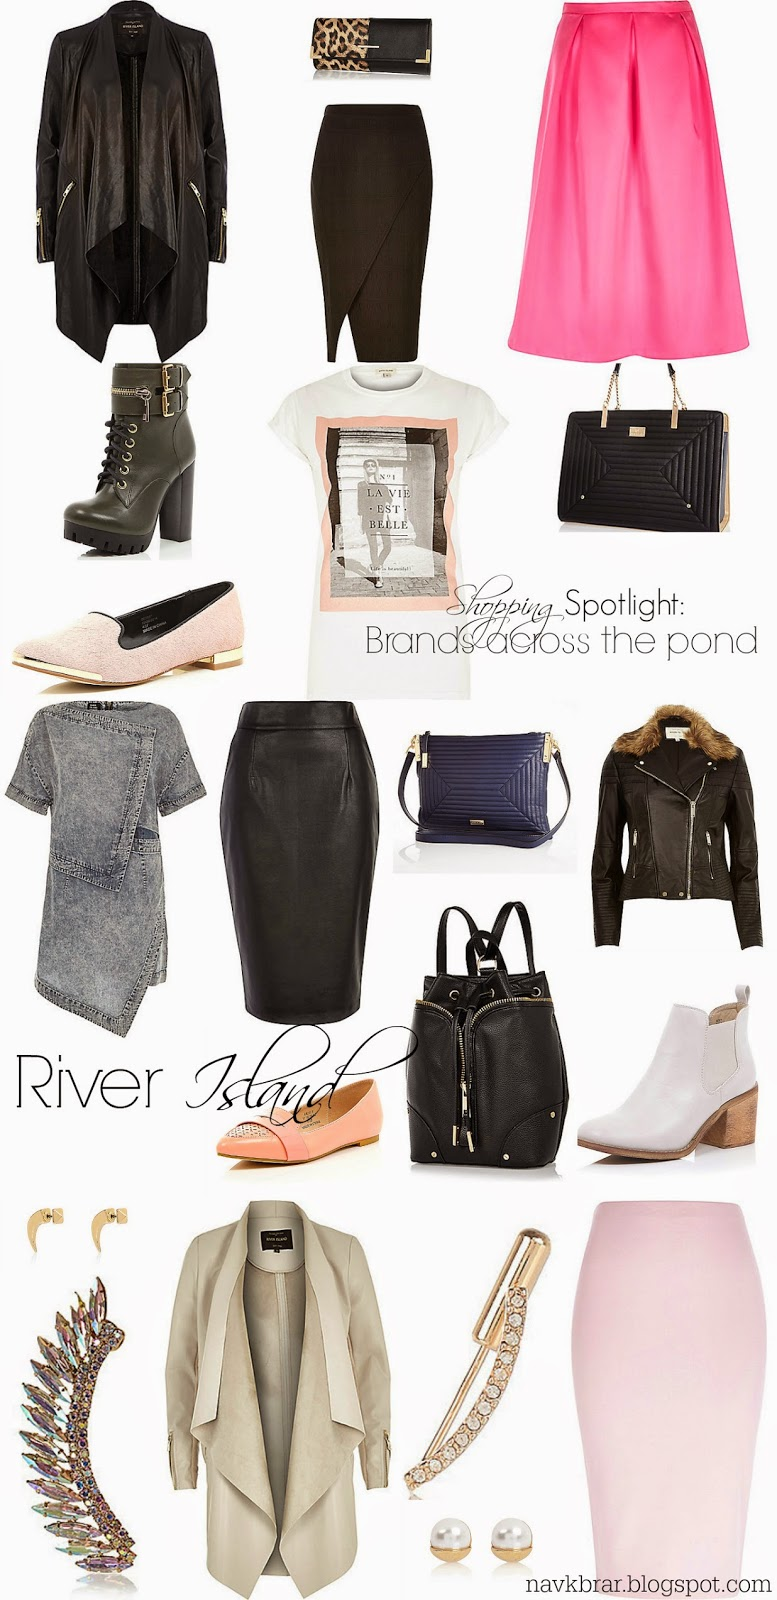 River Island, England high street brands - edgy modern fashion shopping guide